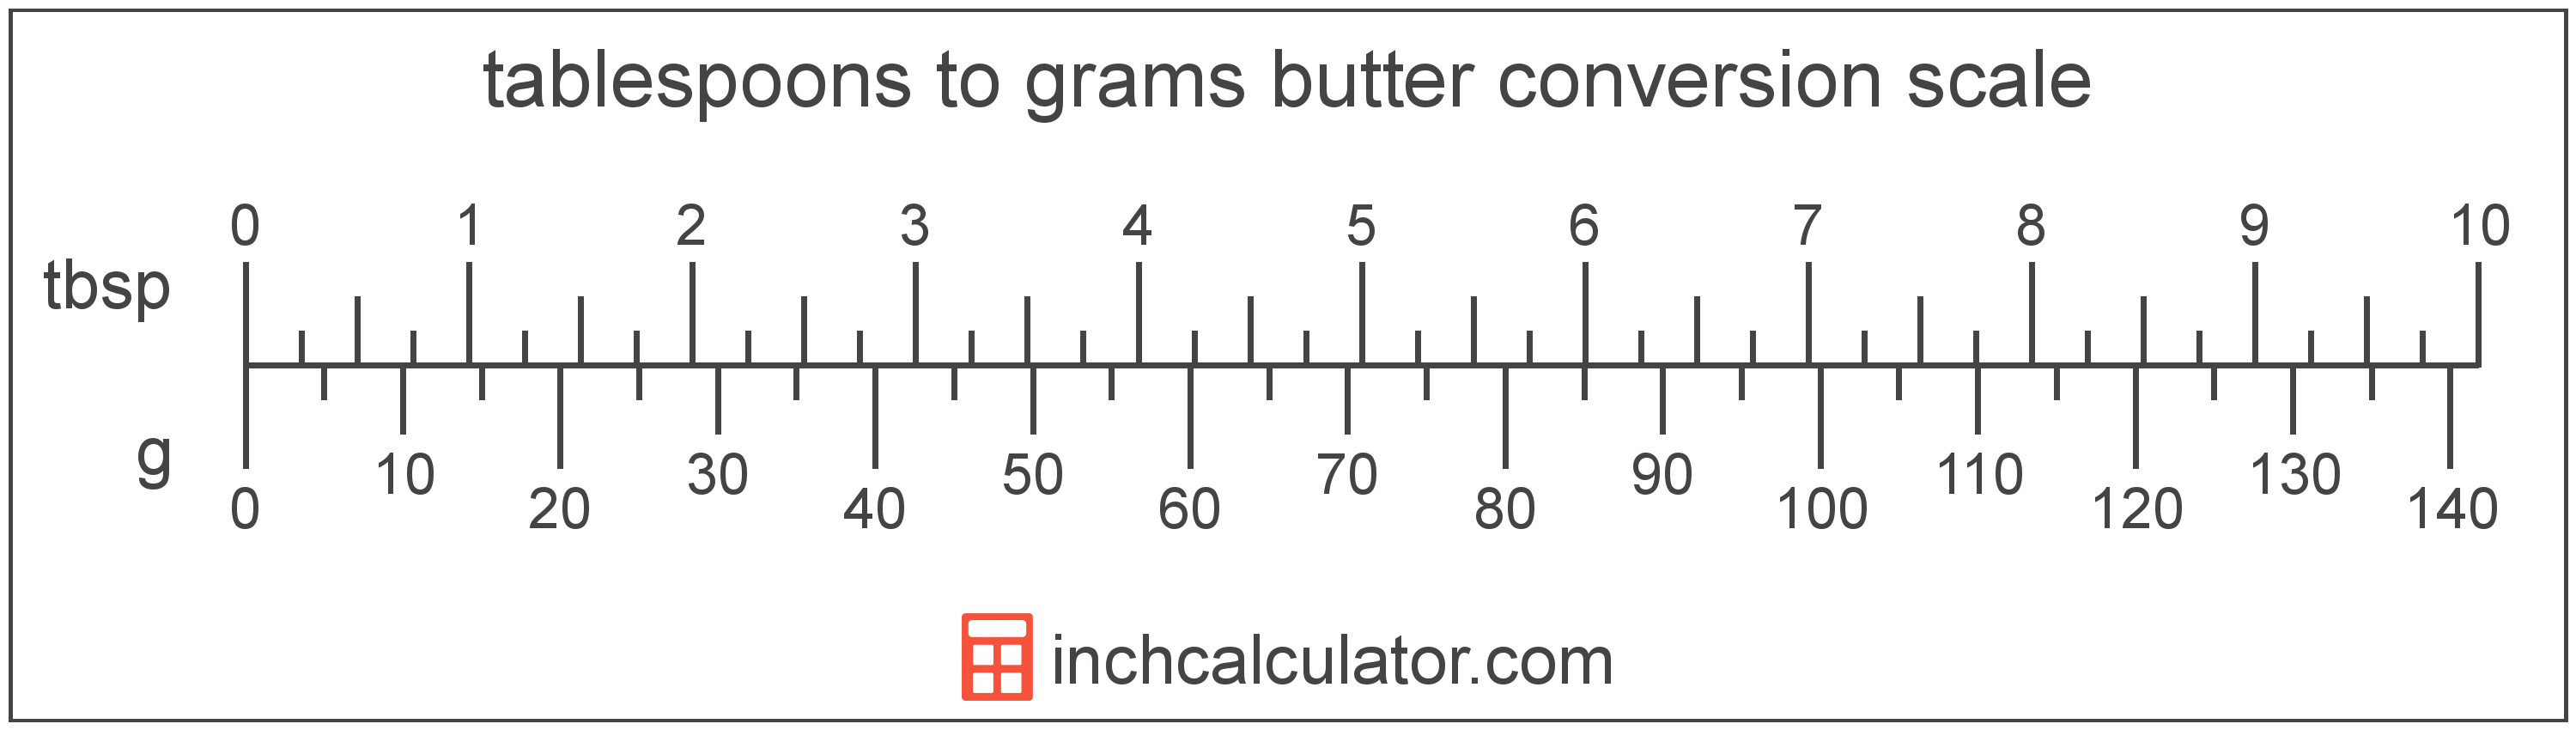 Grams of Butter to Tablespoons Conversion (g to tbsp)